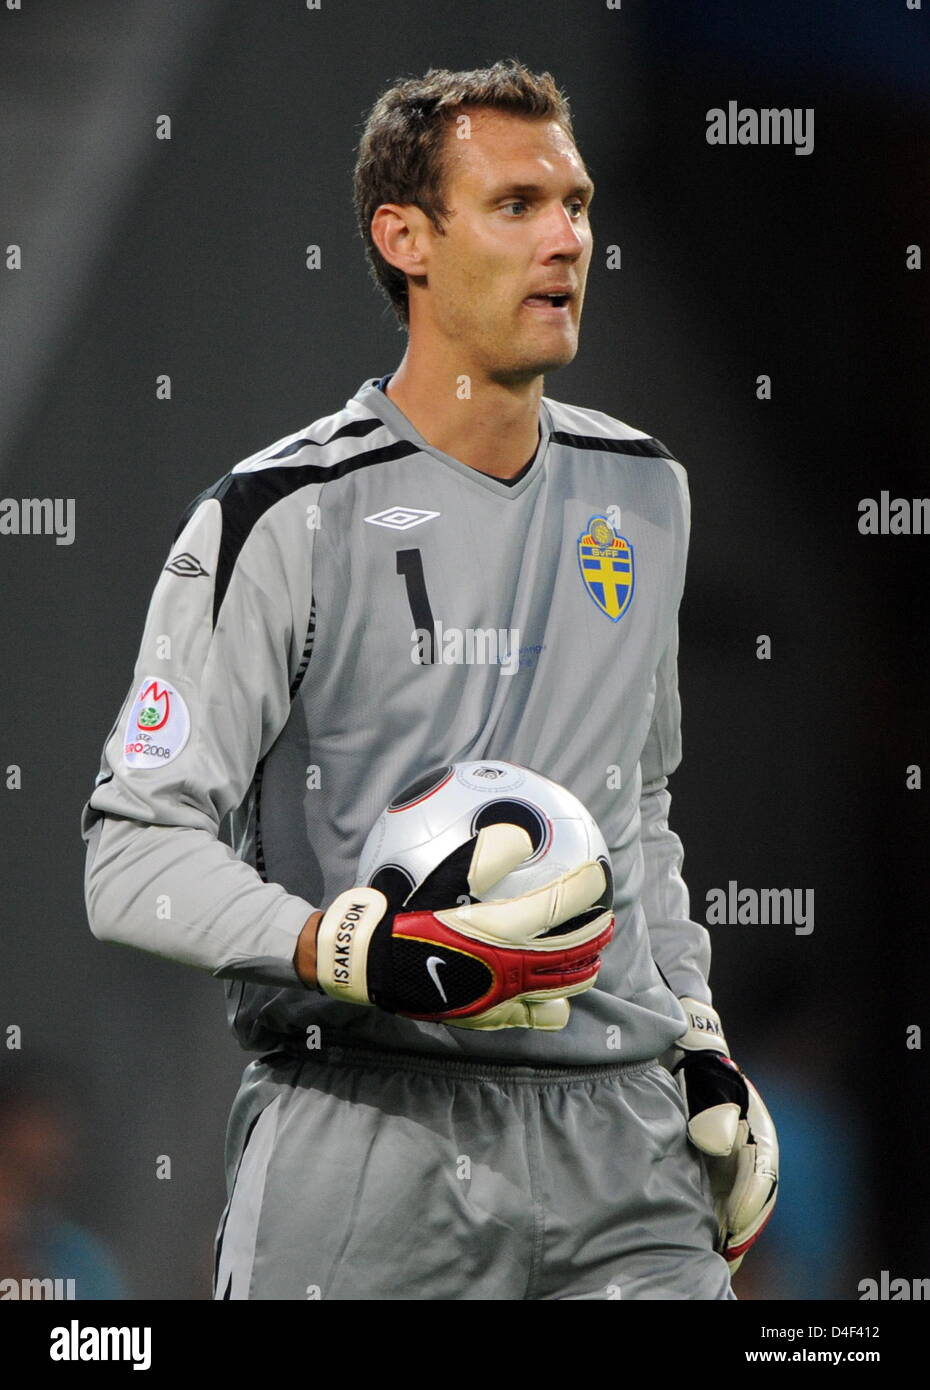 Goalkeeper Andreas Isakson of Sweden during the EURO 2008 preliminary round group D match in Wals-Siezenheim Stadium, - Stock Image